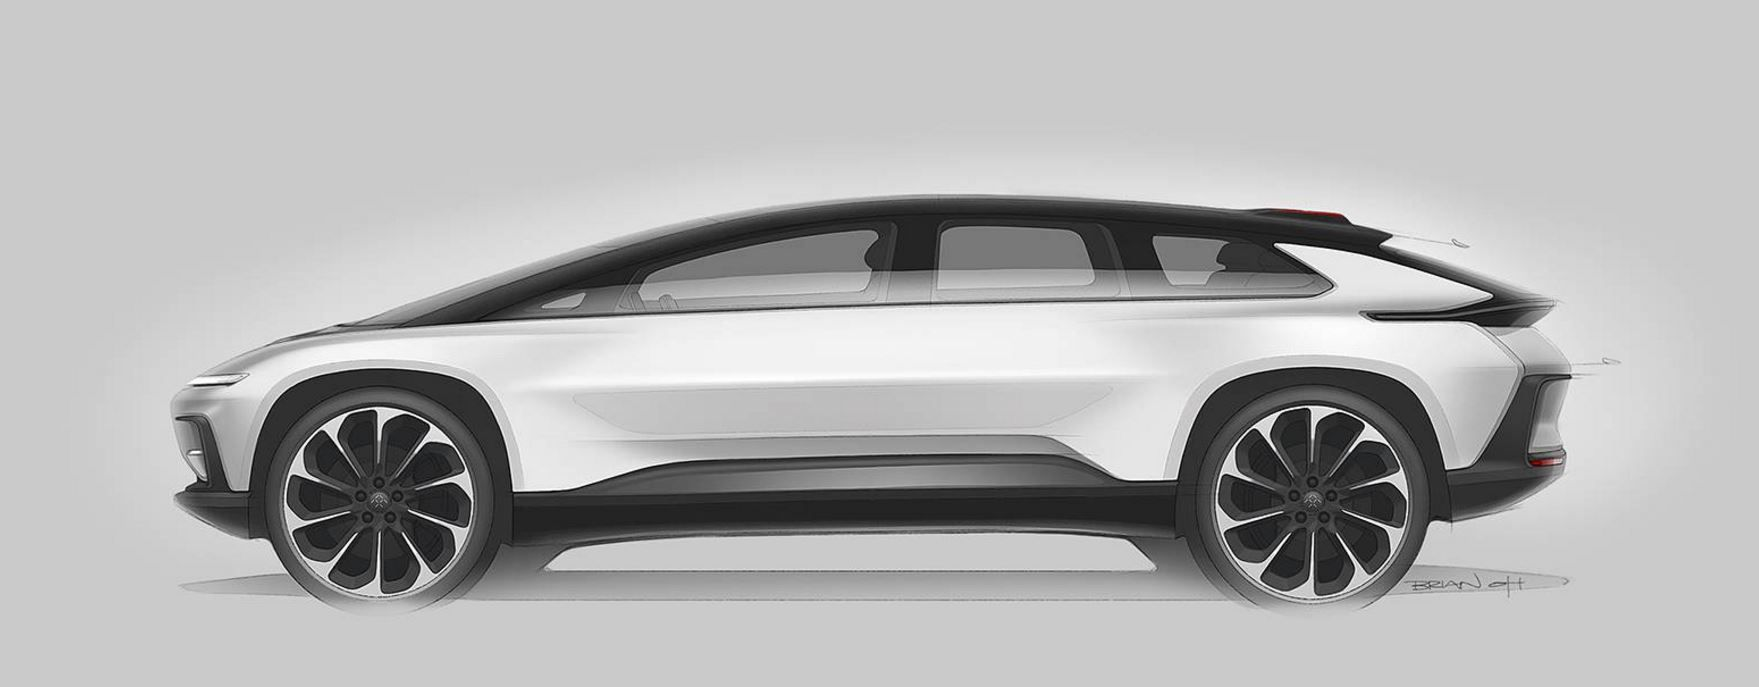 Faraday Future Ff91 Sketch Brian Oh カーデザイン 自動車 デザイン